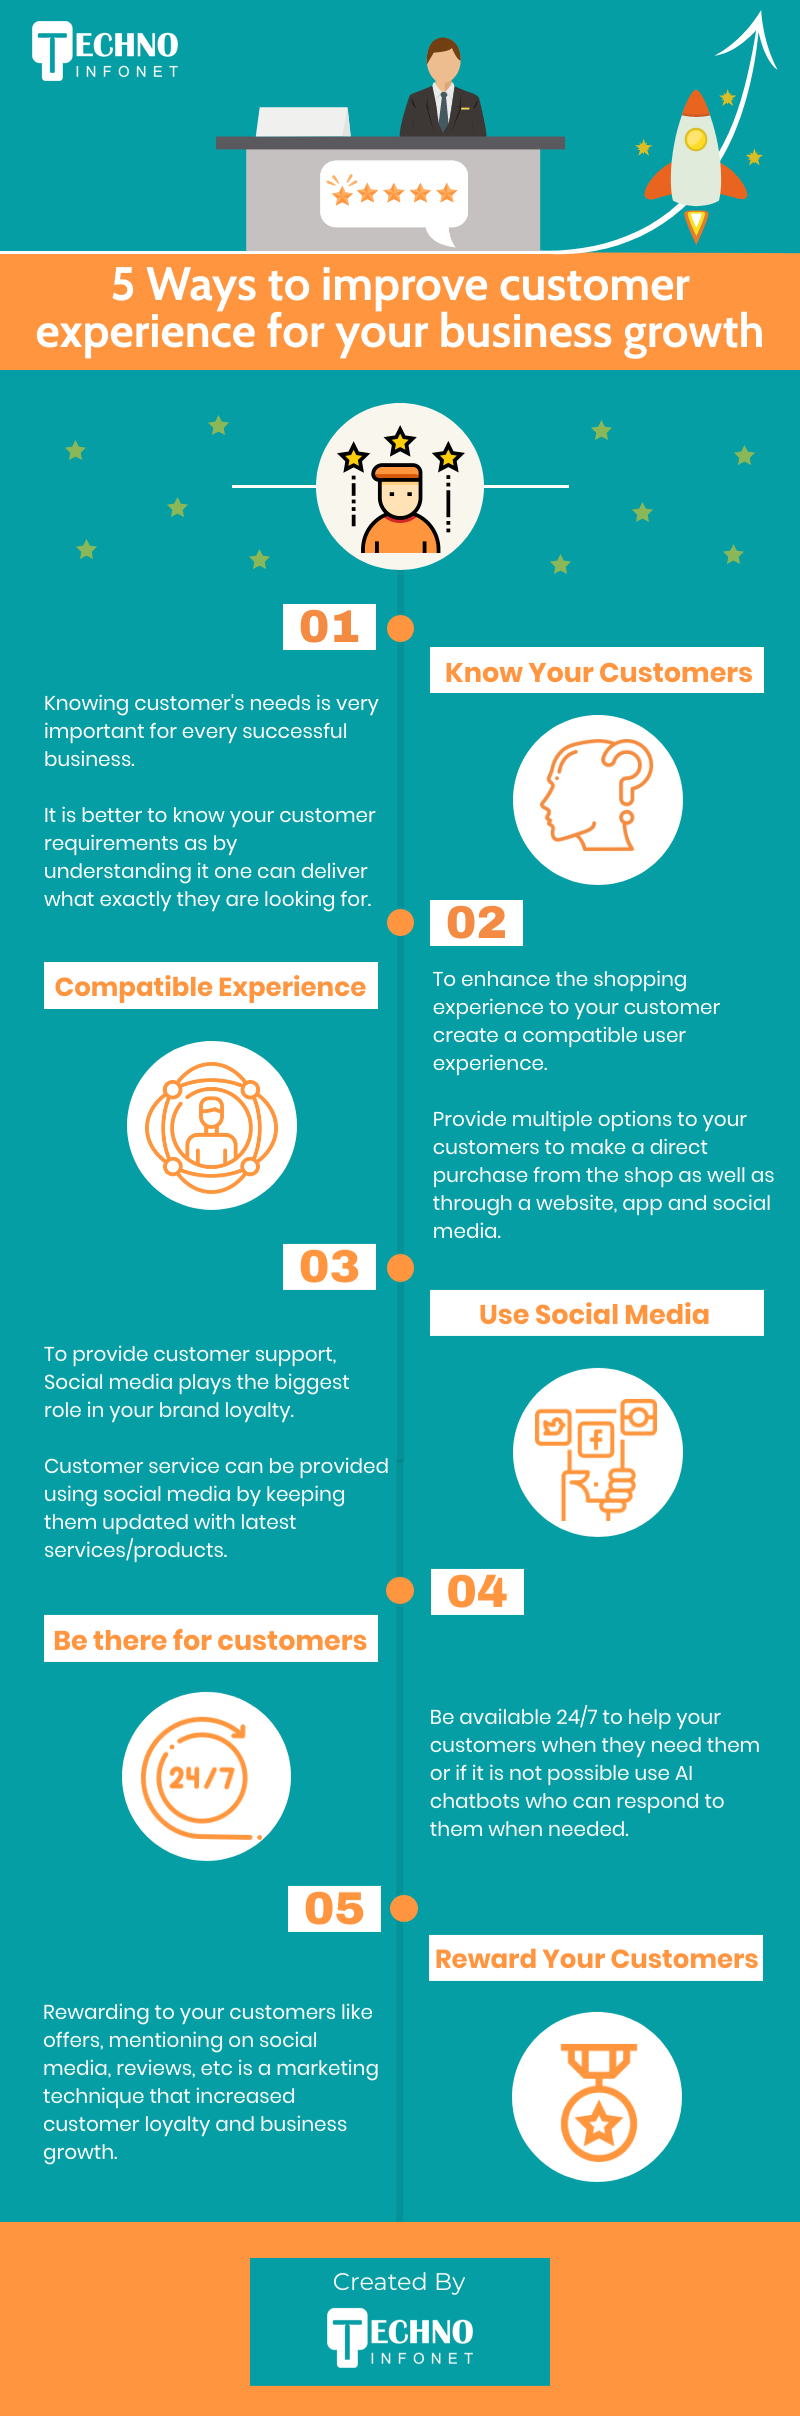 5 Ways to improve customer experience for your business growth